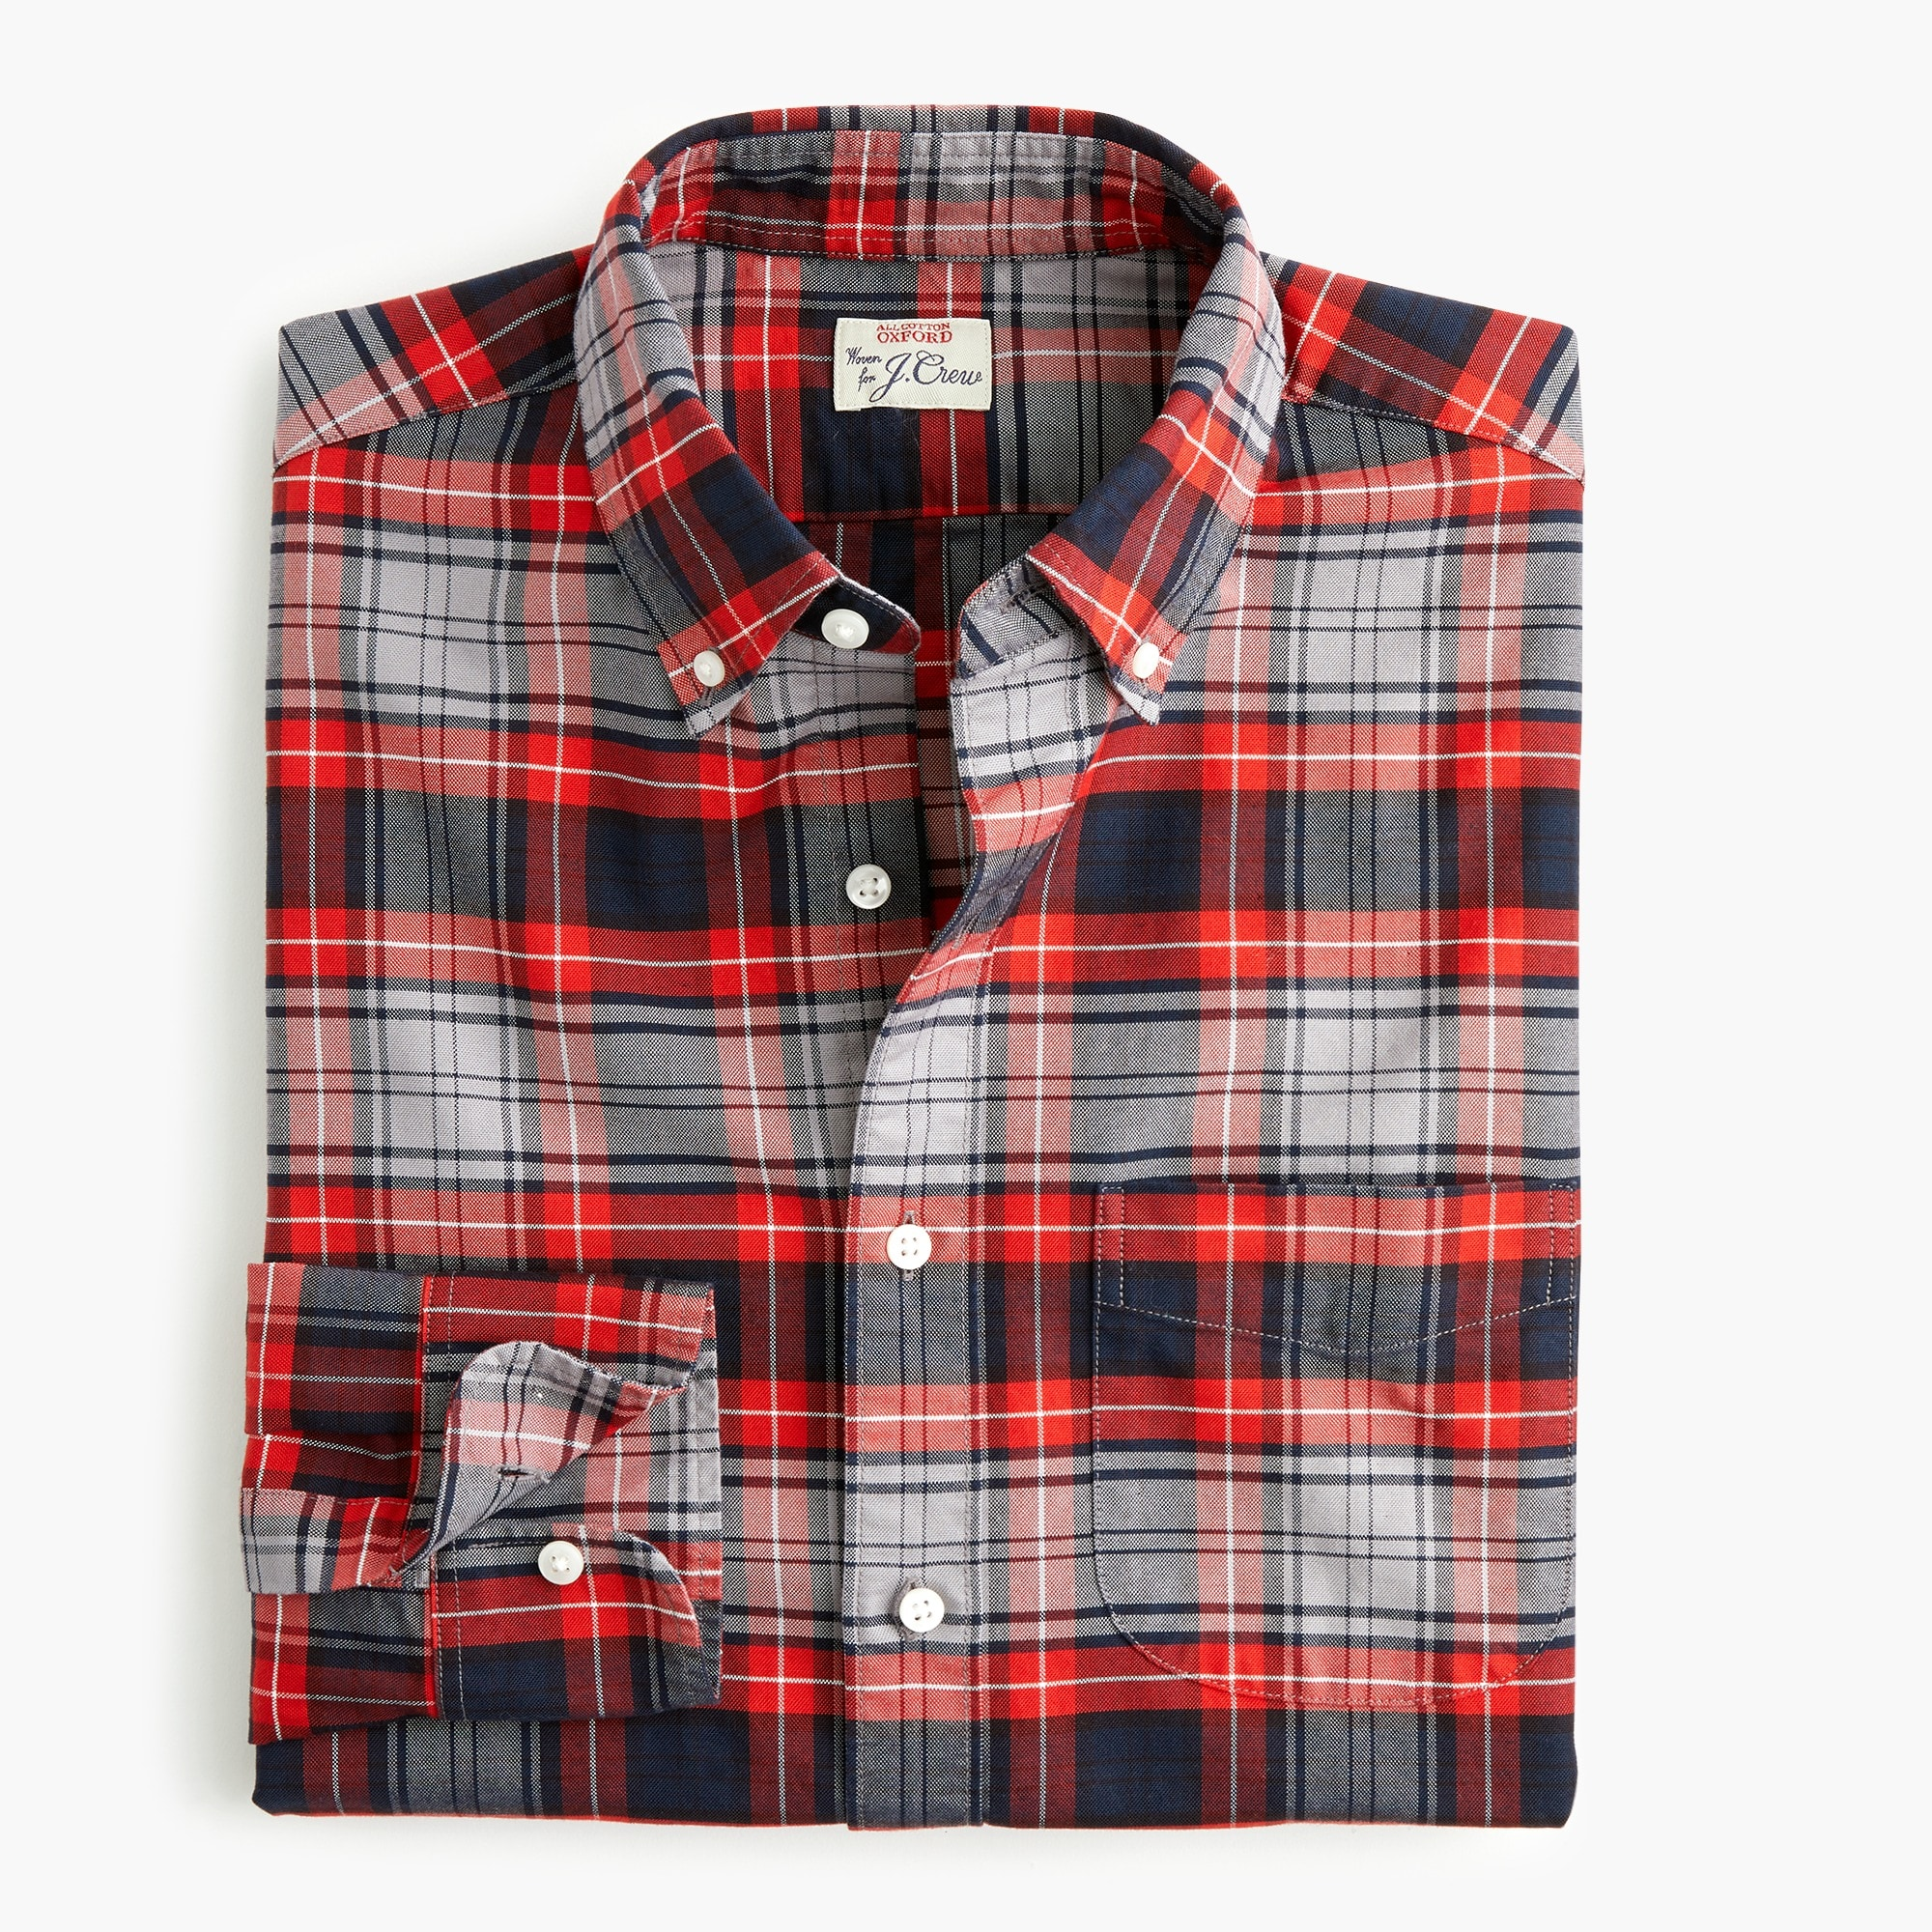 mens American Pima cotton oxford shirt with mechanical stretch in red-and-grey plaid